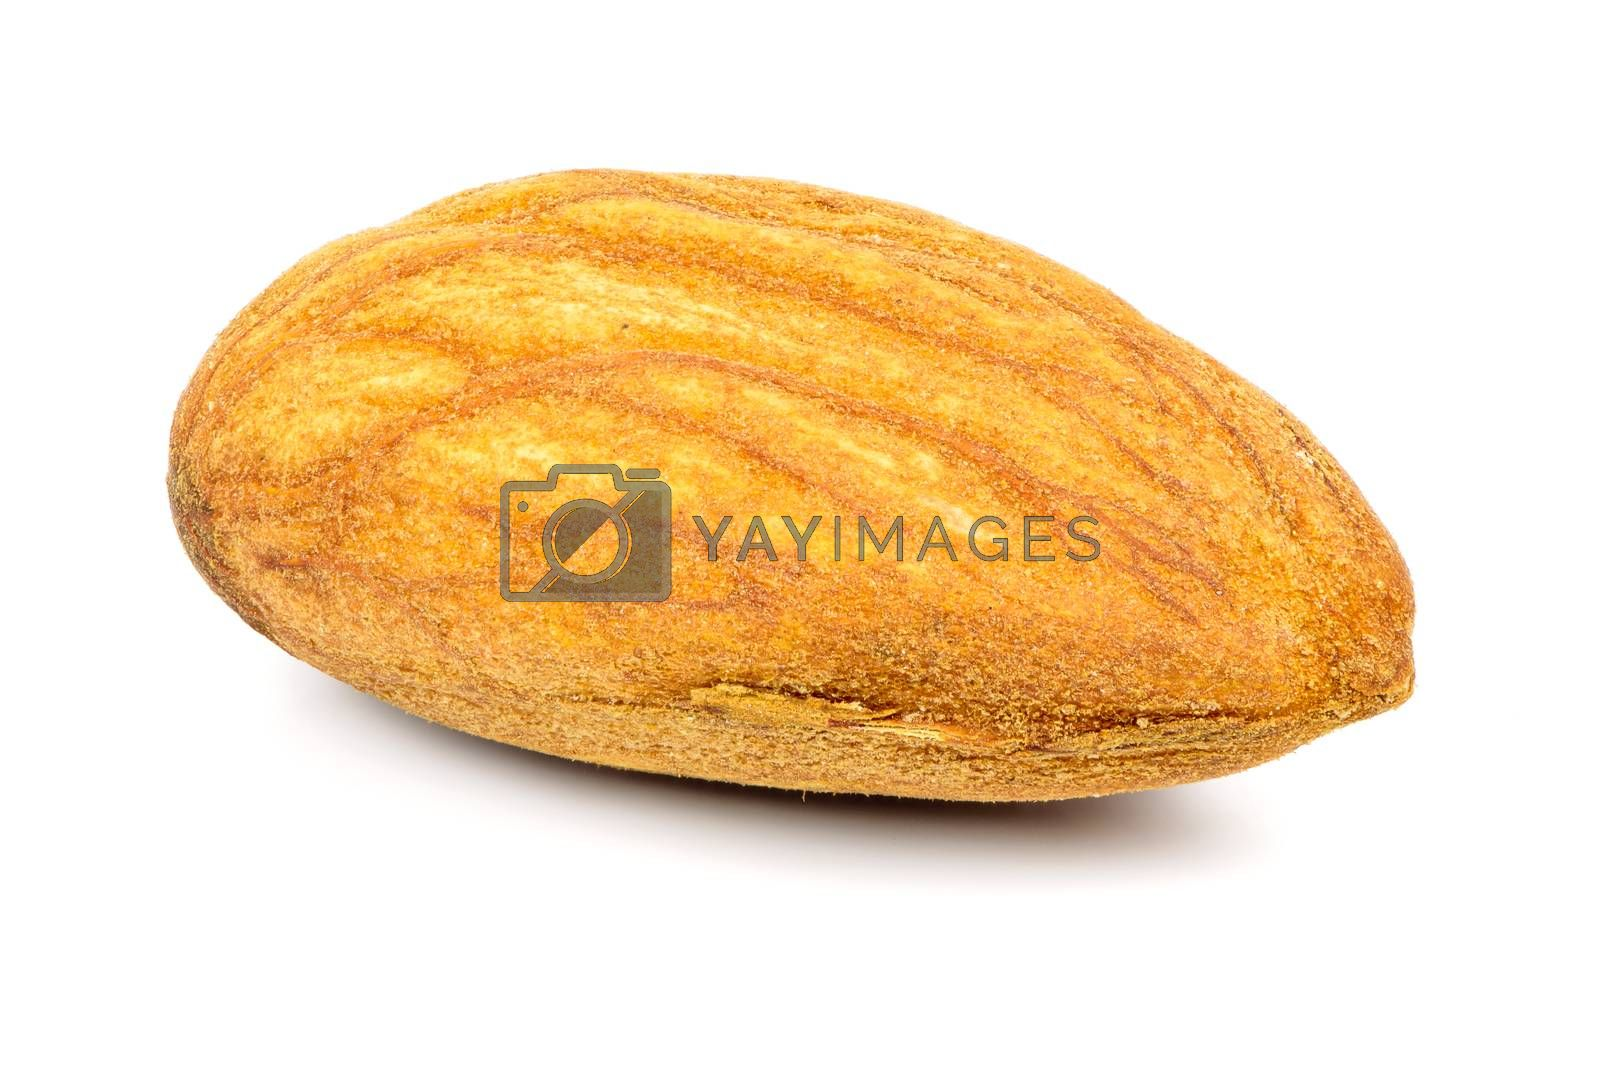 Royalty free image of Single almond nut on white background by mkos83